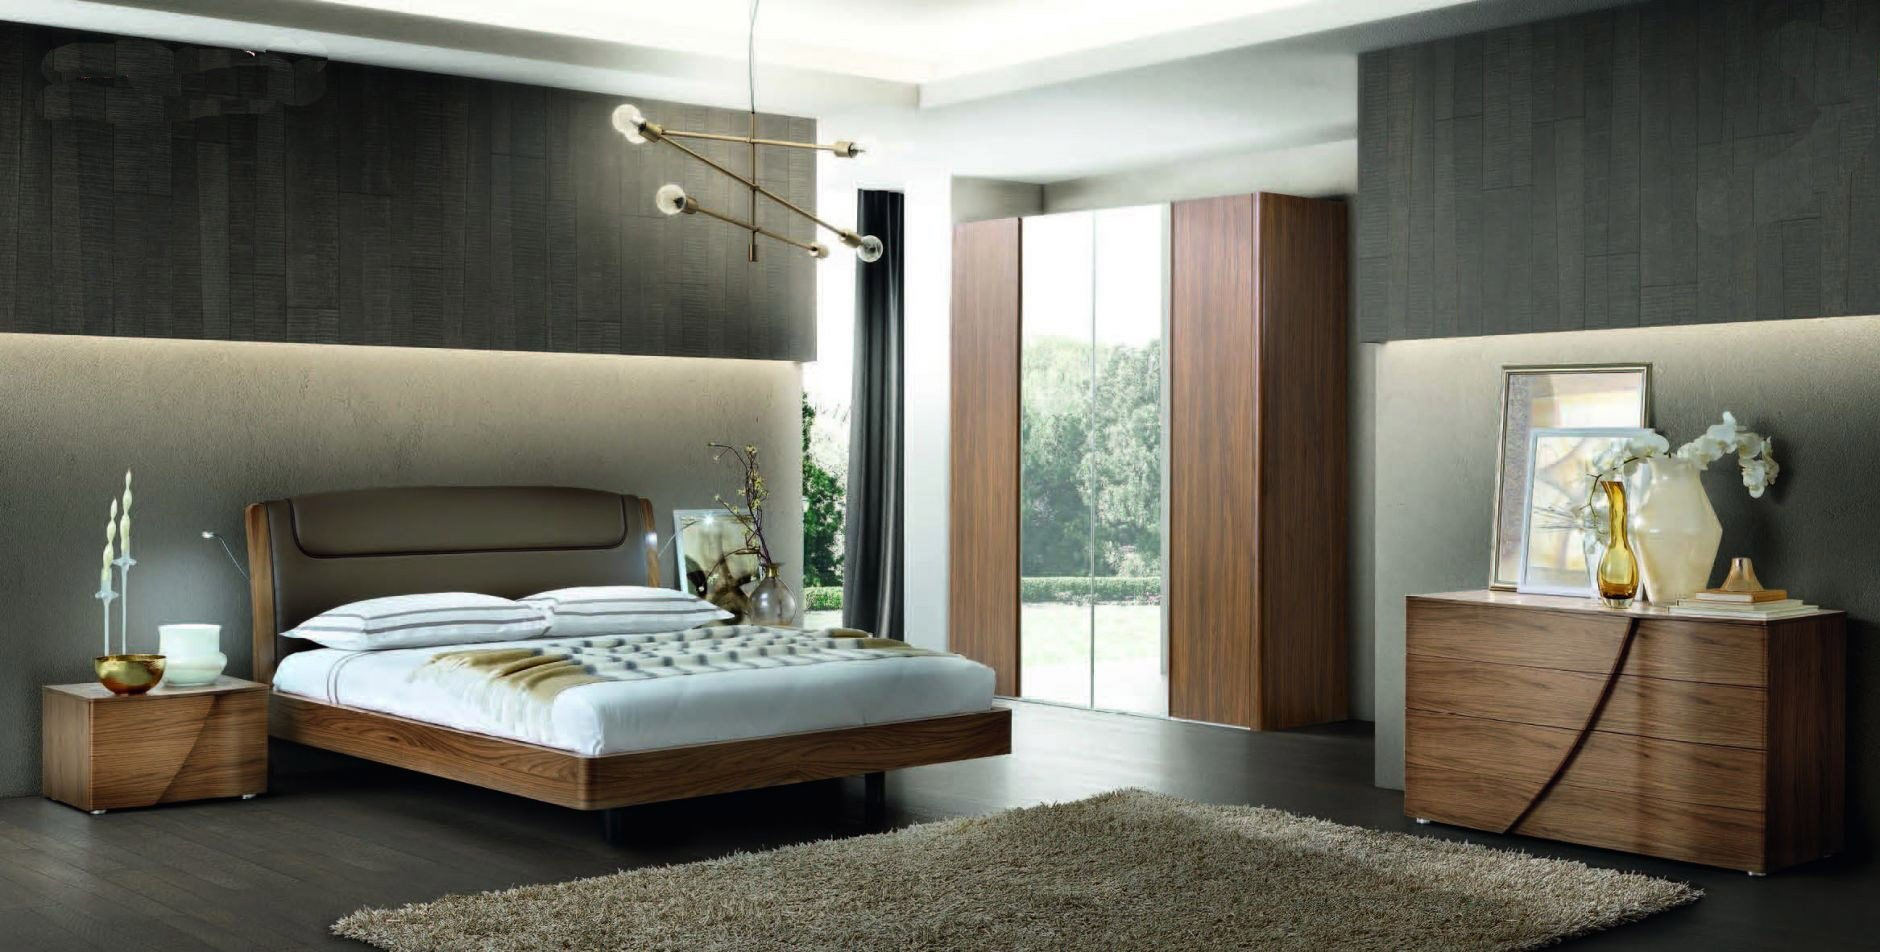 Best Made In Italy Leather Luxury Bedroom Furniture Sets With Pictures